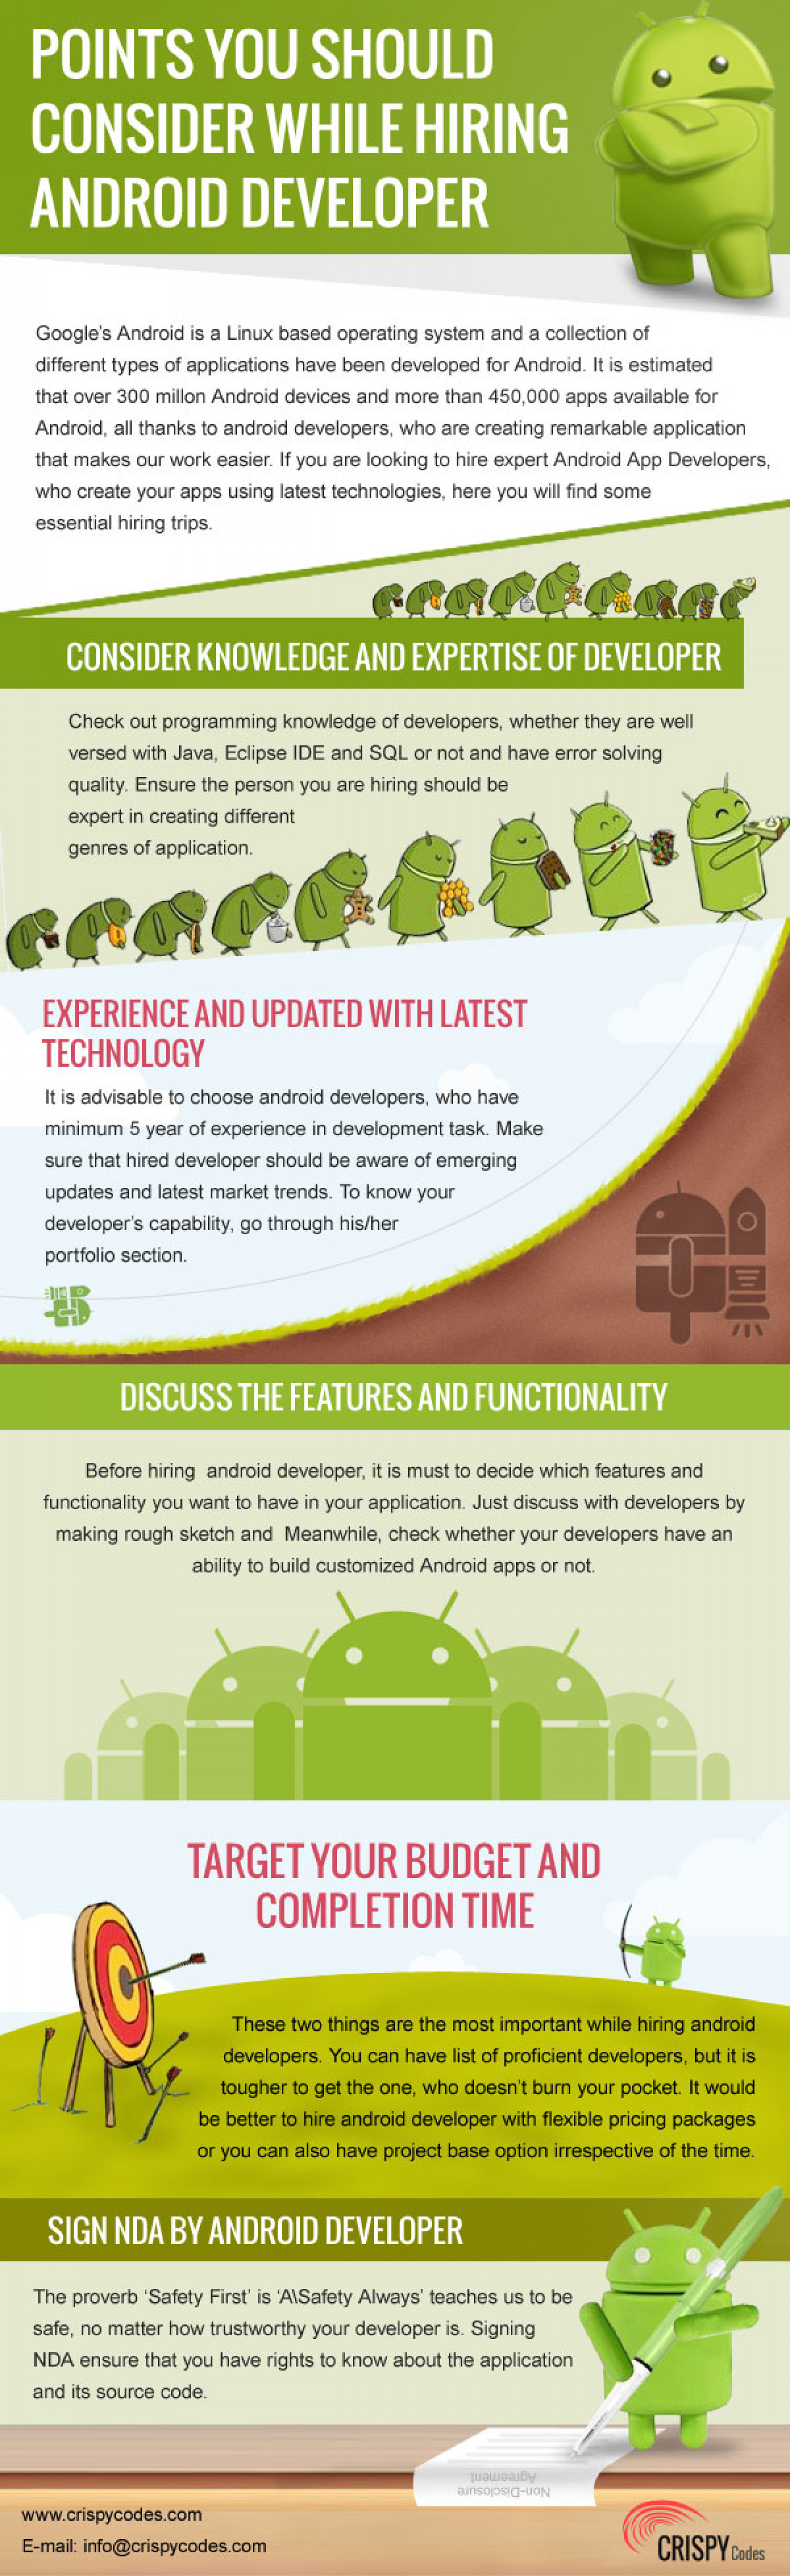 Points You Should Consider While Hiring Android Developer Infographic